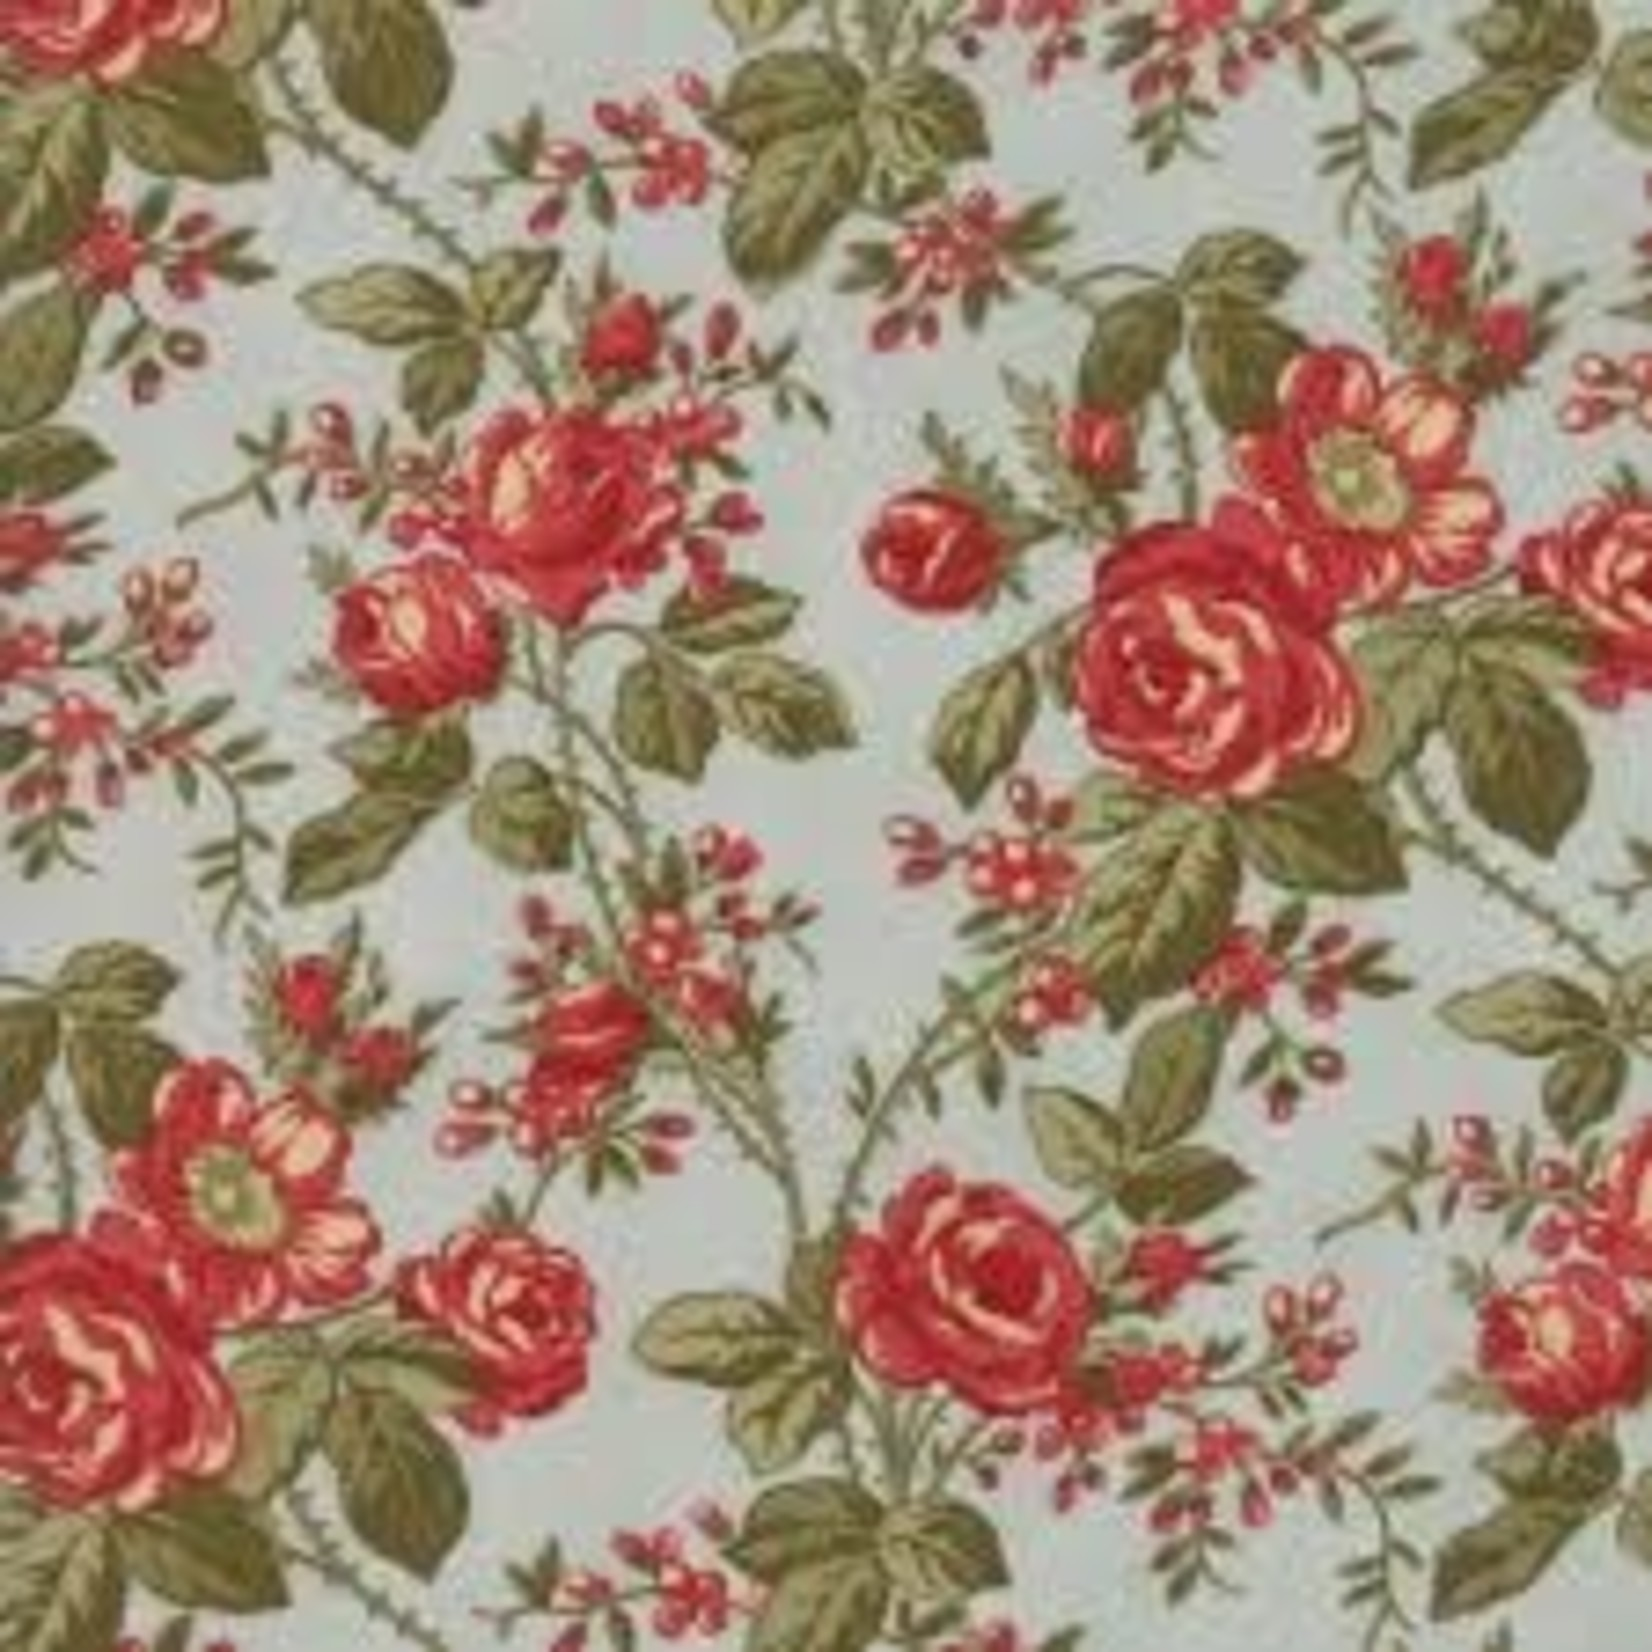 Moda 3 Sisters - Rosewood - Floral Roses - Frost